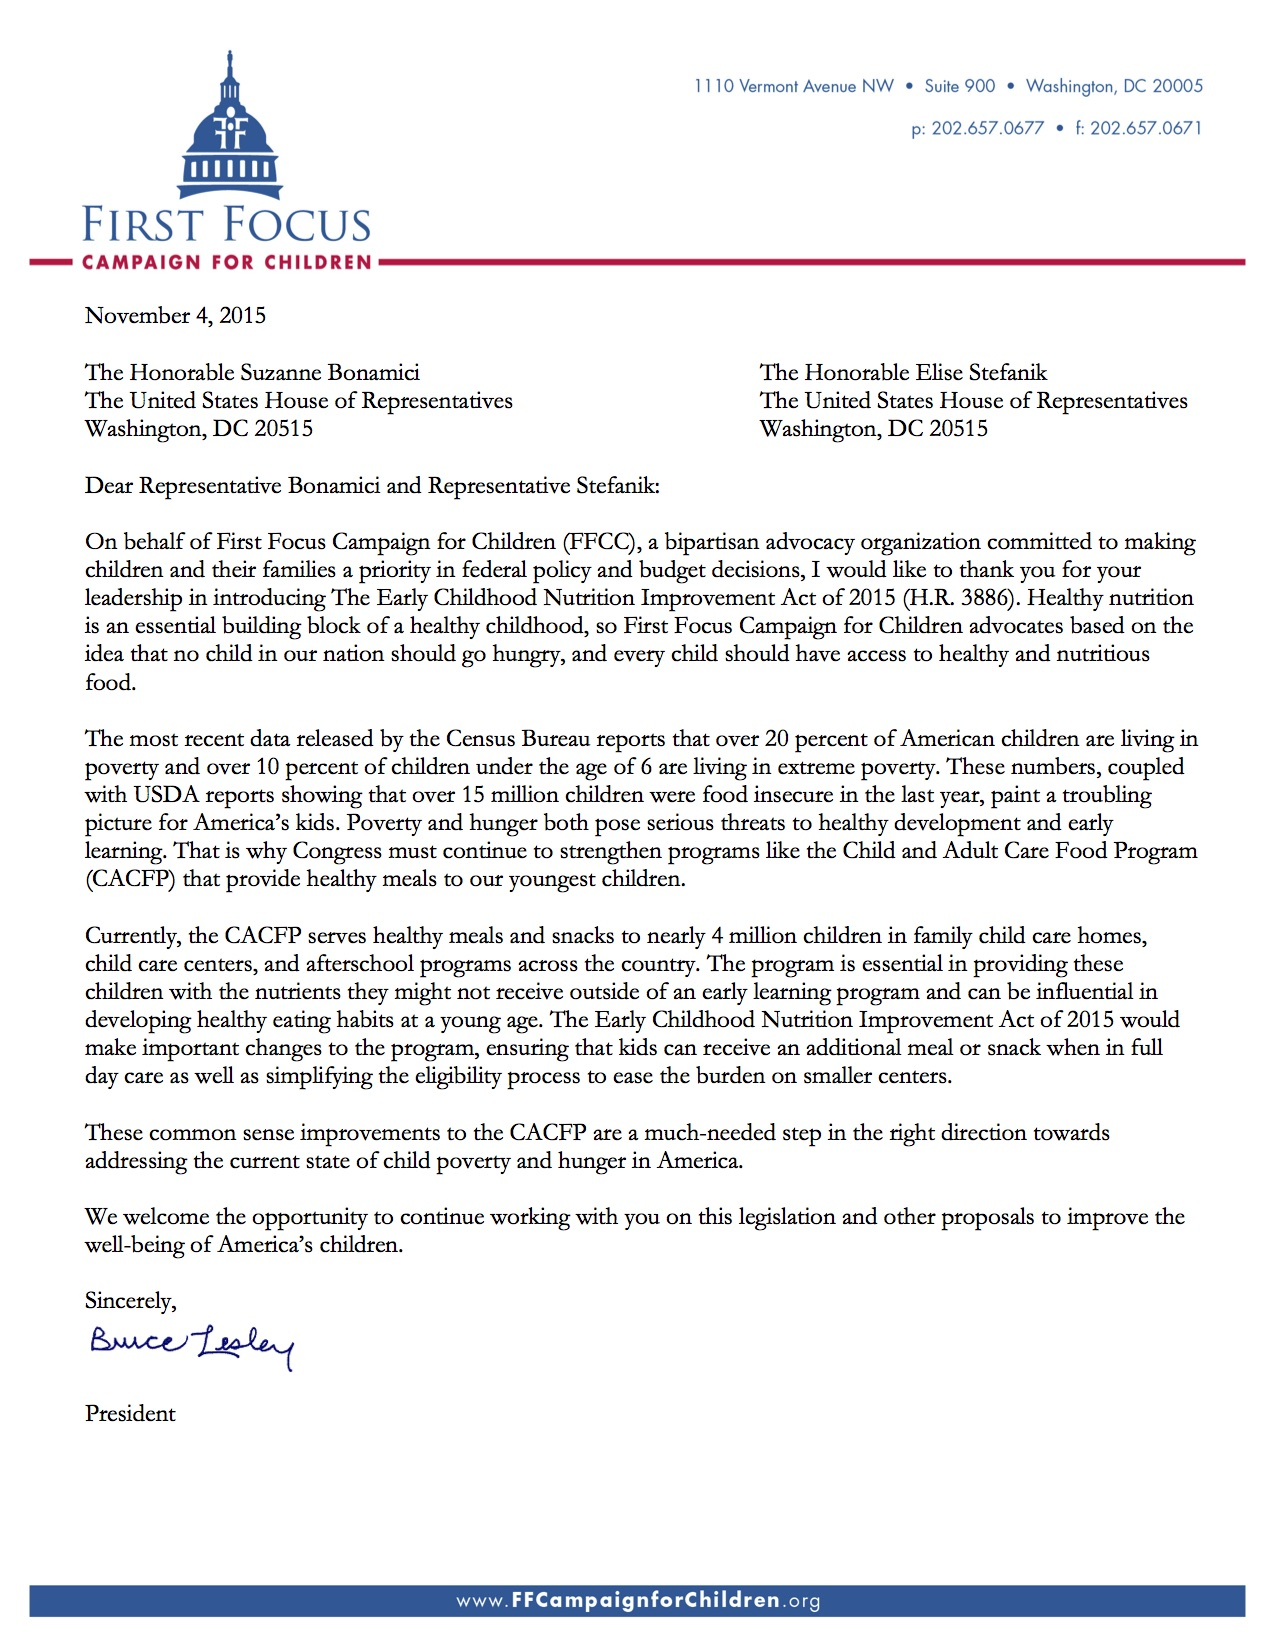 Early Childhood Nutrition Improvement Act Letter[1]